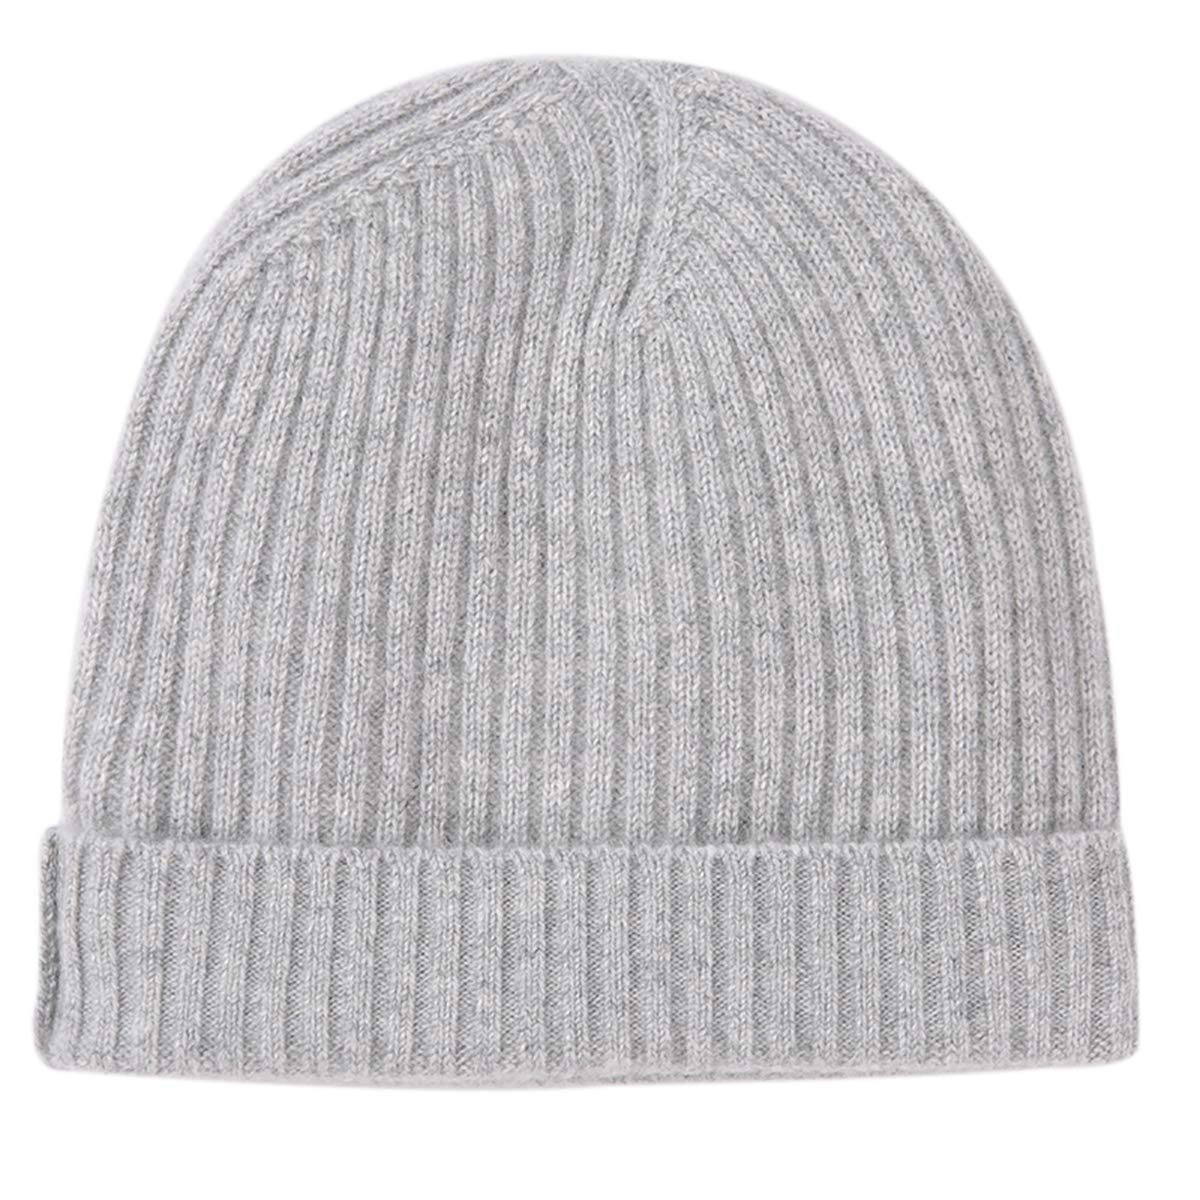 b9aff5ebc Pure 100% Cashmere Beanie for Men, Warm Soft Mens Cashmere Hat in a Gift Box